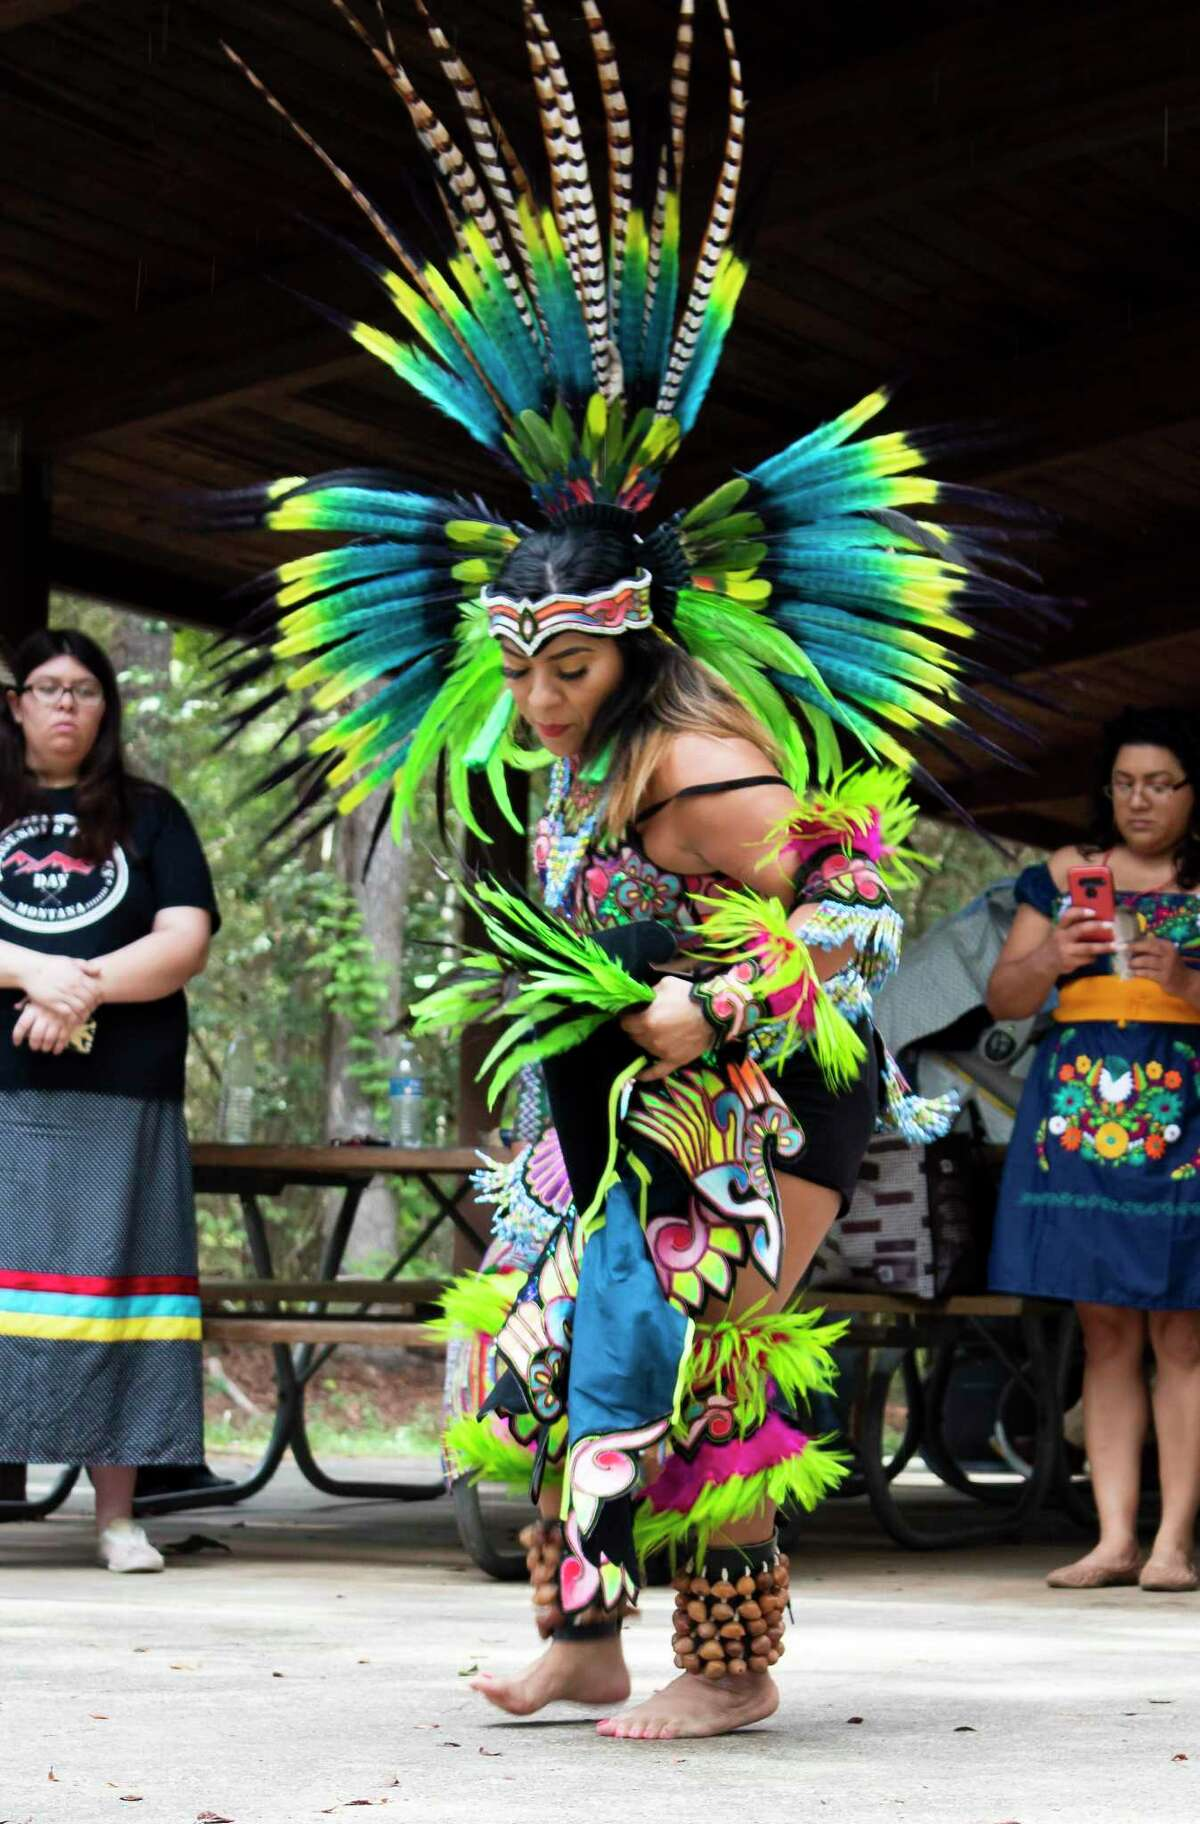 Maribel Garcia with Danza Azteca Taxcayolot performed a dance to the beat of drums in Jesse Jones Park on Oct. 14 celebrating Indigenous People's Day.